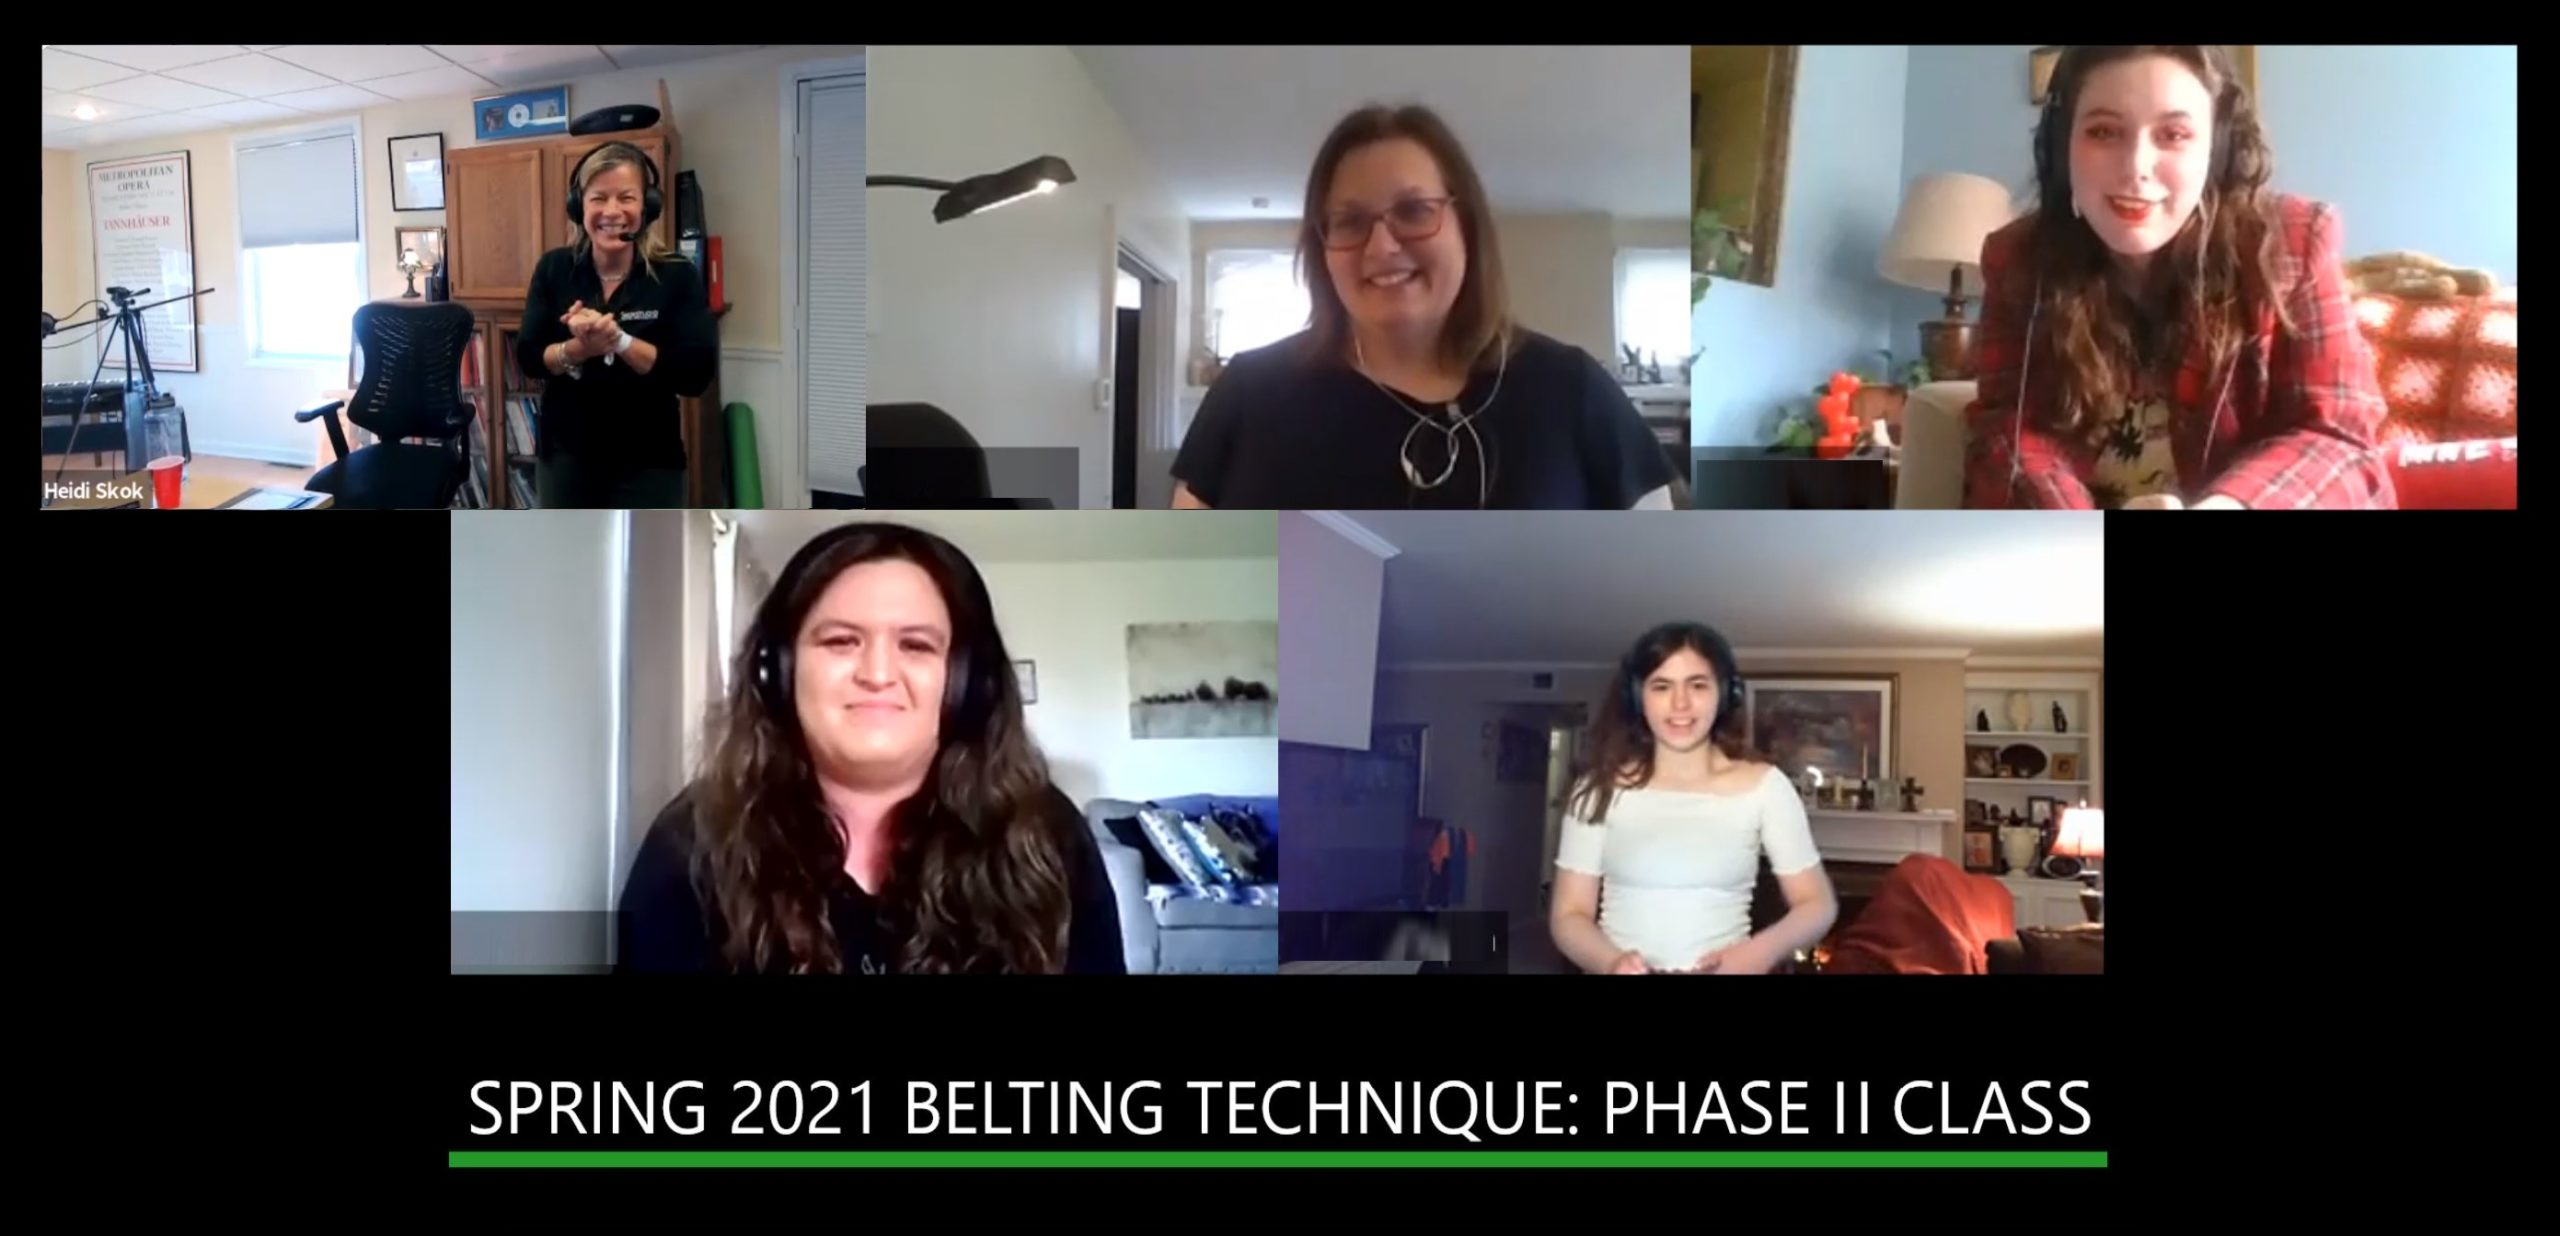 Spring 2021 Belting Technique: Phase II